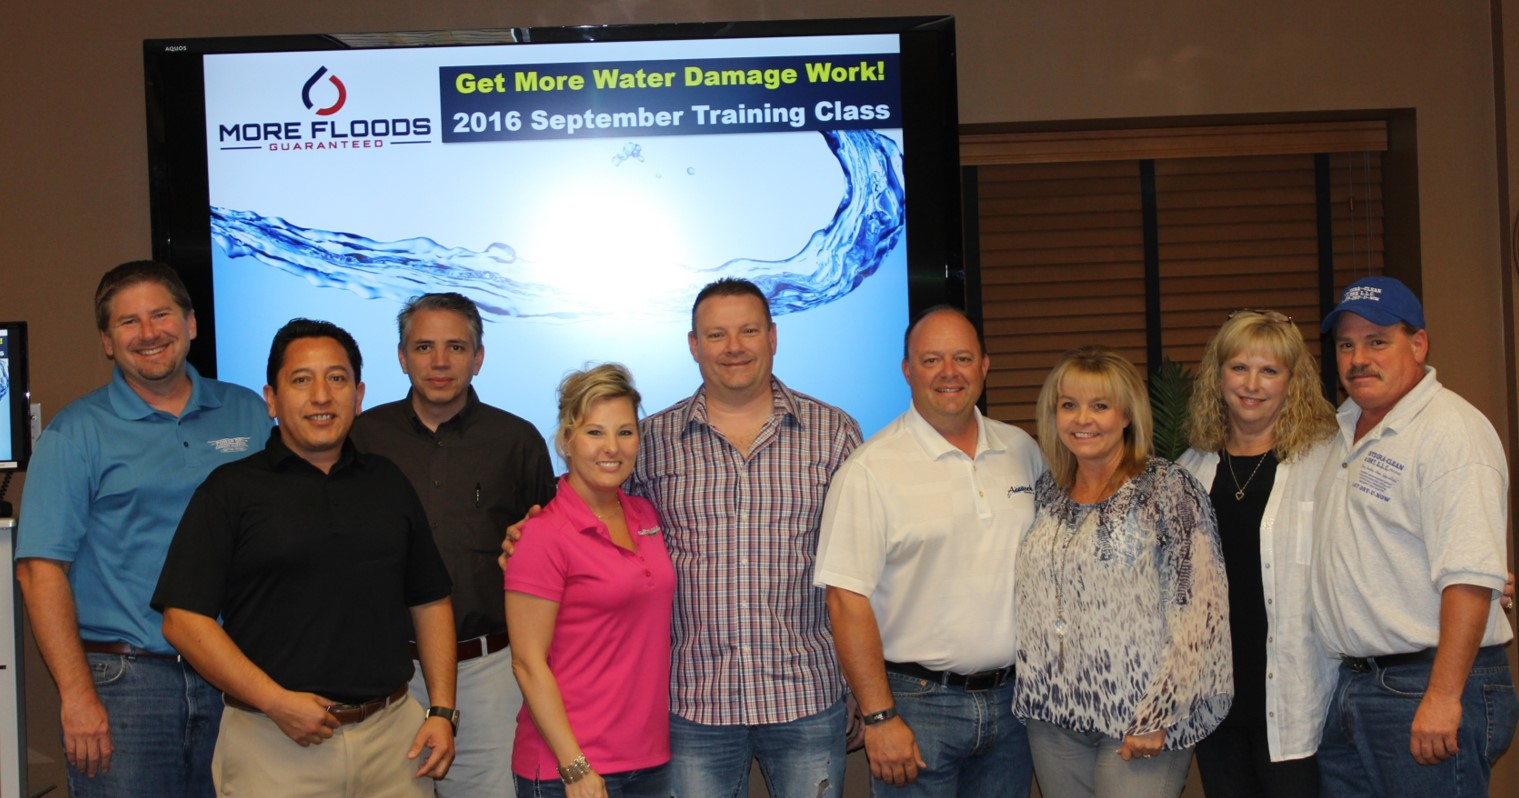 September 2016 More Floods Training Class Announced